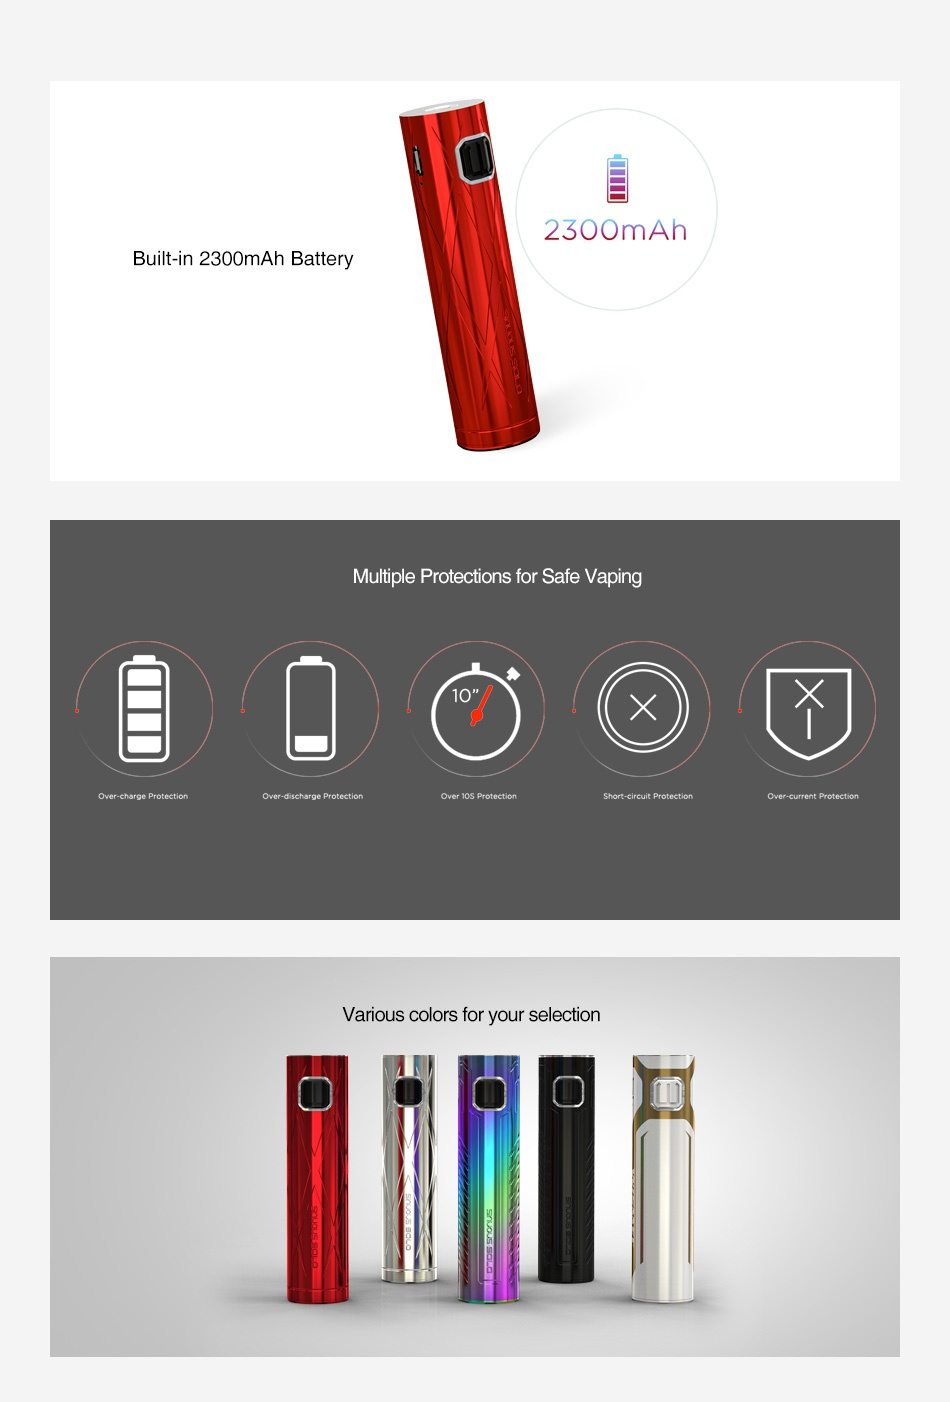 WISMEC SINUOUS SOLO Battery 2300mAh 2300mAh Built in 2300mAh Battery ltiple Protections for Safe Vaping   Various colors for your selection